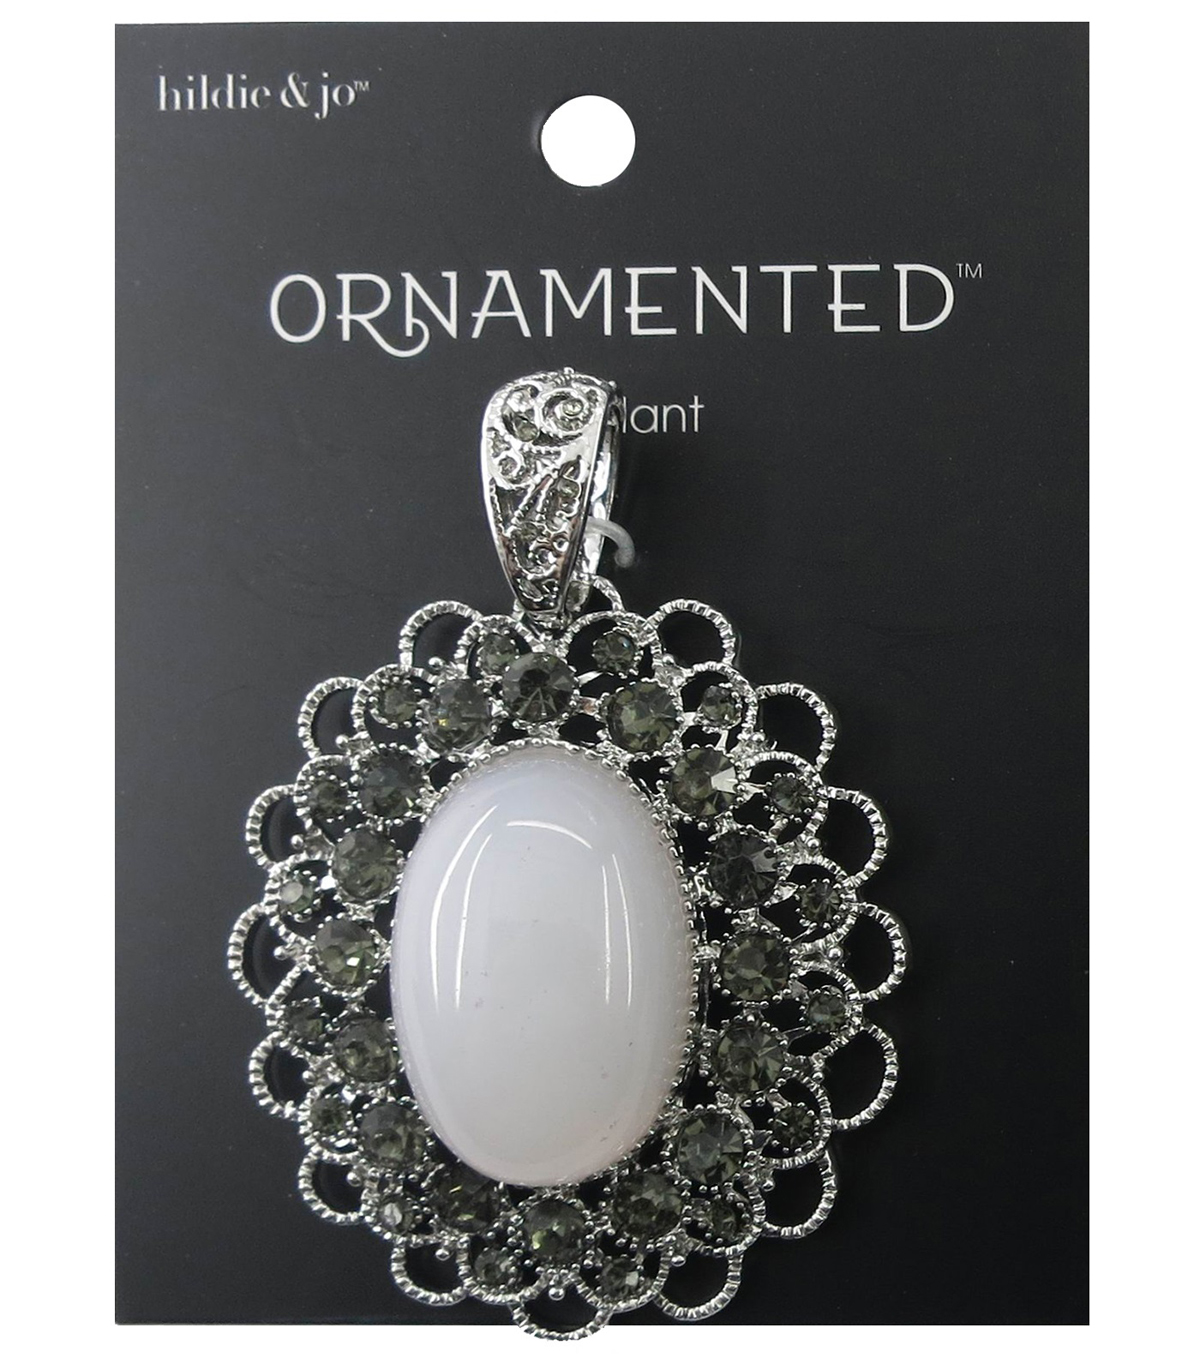 hildie & jo™ Ornamented Oval Scalloped Silver Pendant-Ivory Stone